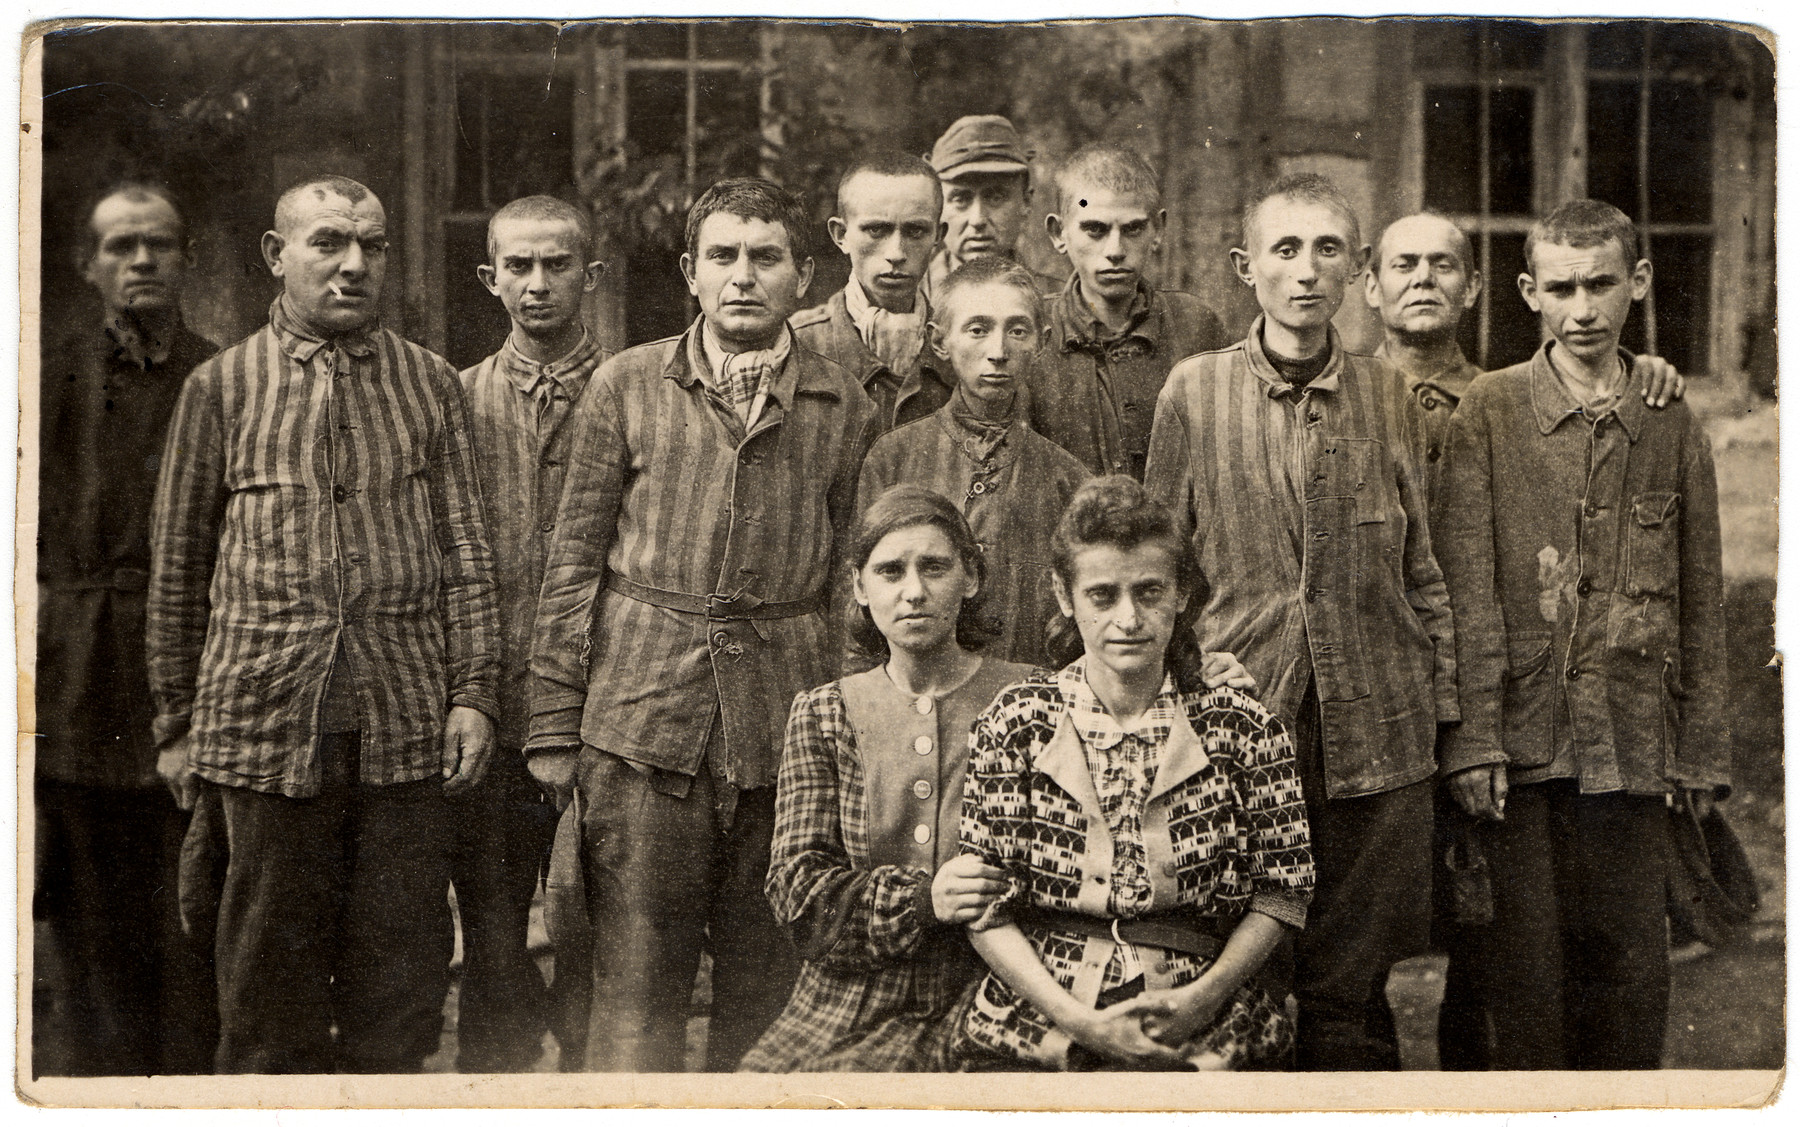 Survivors from an unidentified concentration camp, most of whom are still in uniform, pose for a group photograph.   The original Yiddish caption states that the people represented were detained with the donor's brother-in-law.    Among those pictured is Isak Lipschitz (later Isak Lips), standing third from left.